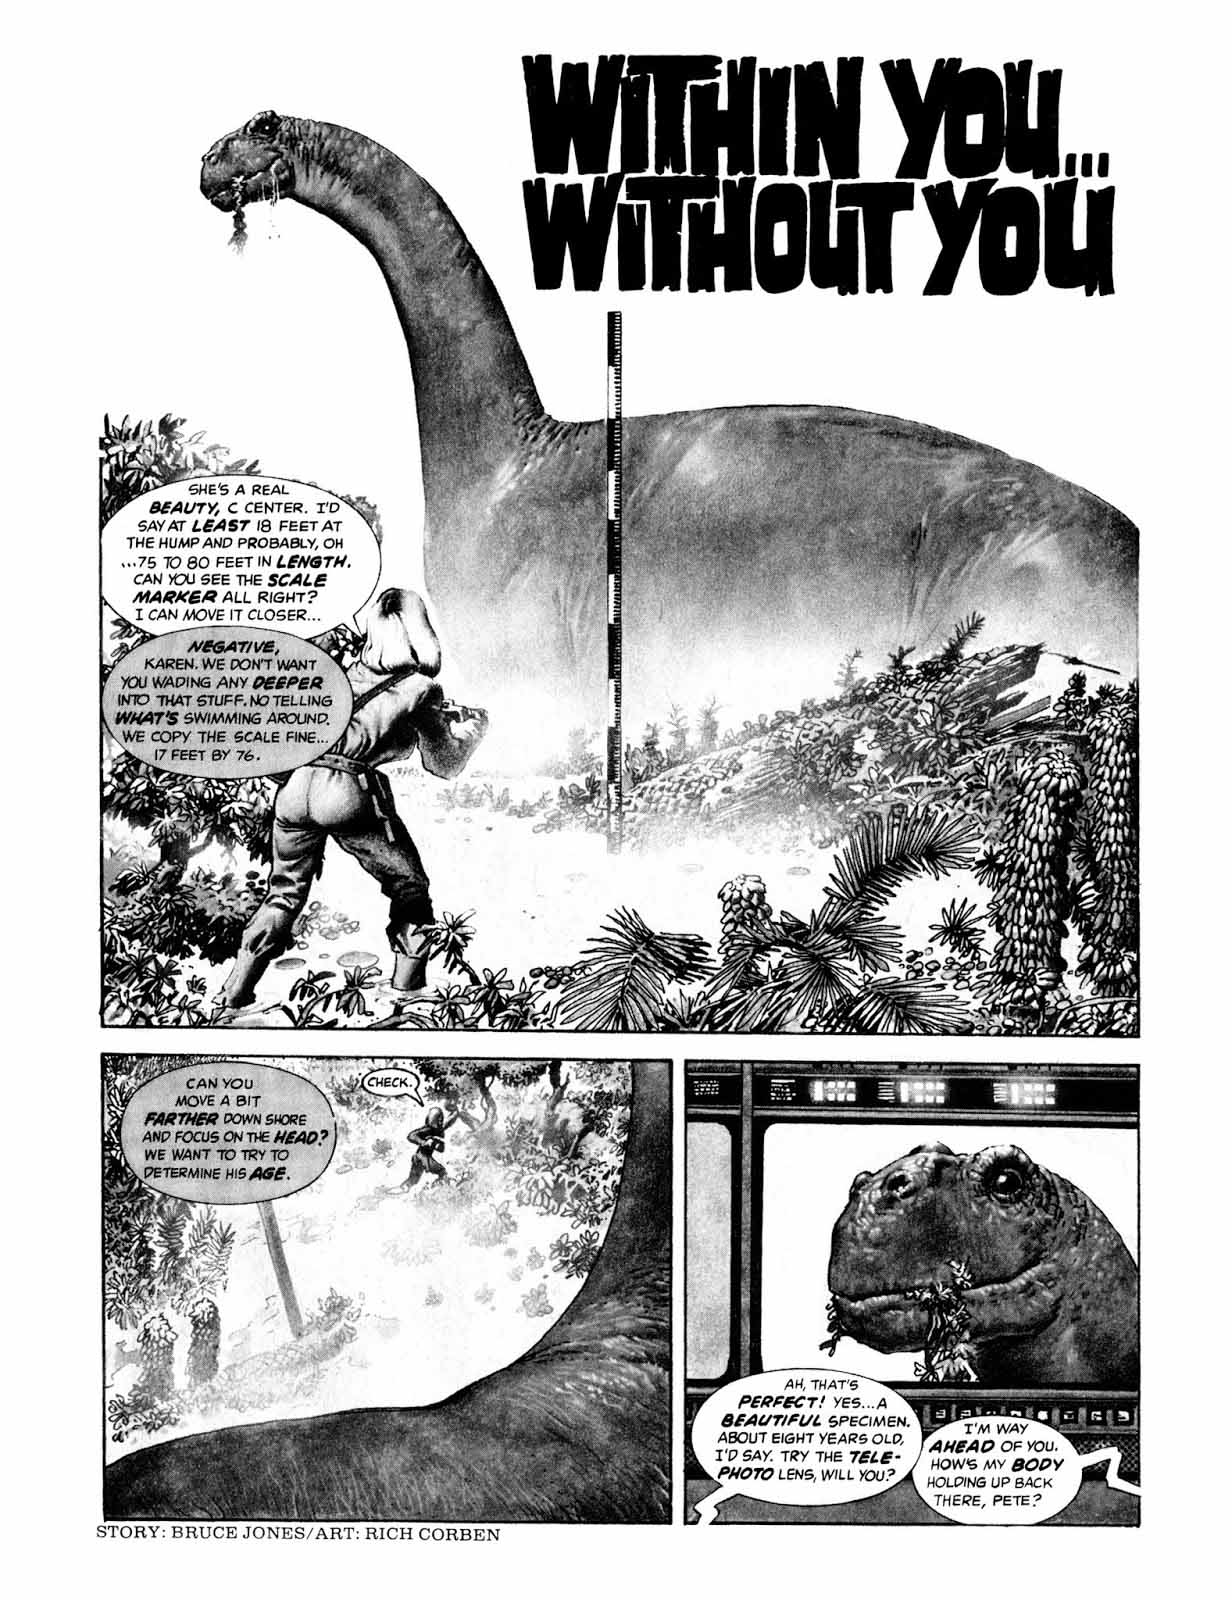 Within you…Without you from Eerie #77 (1976)